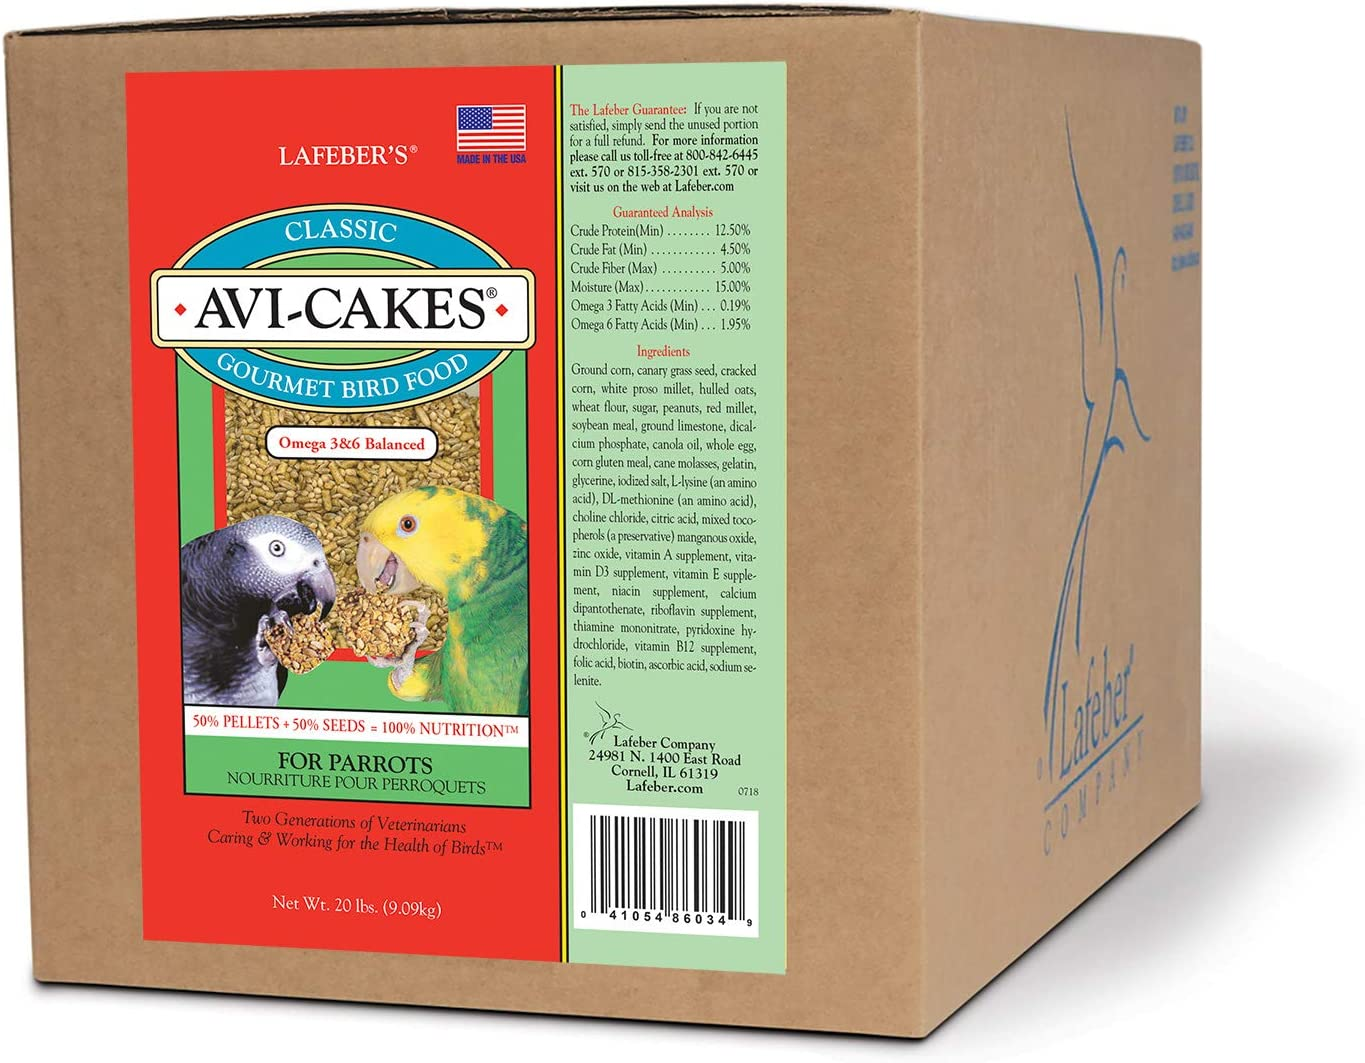 LAFEBER'S Classic Avi-Cakes Pet Bird Food, Made with Non-GMO and Human-Grade Ingredients, for Parrots